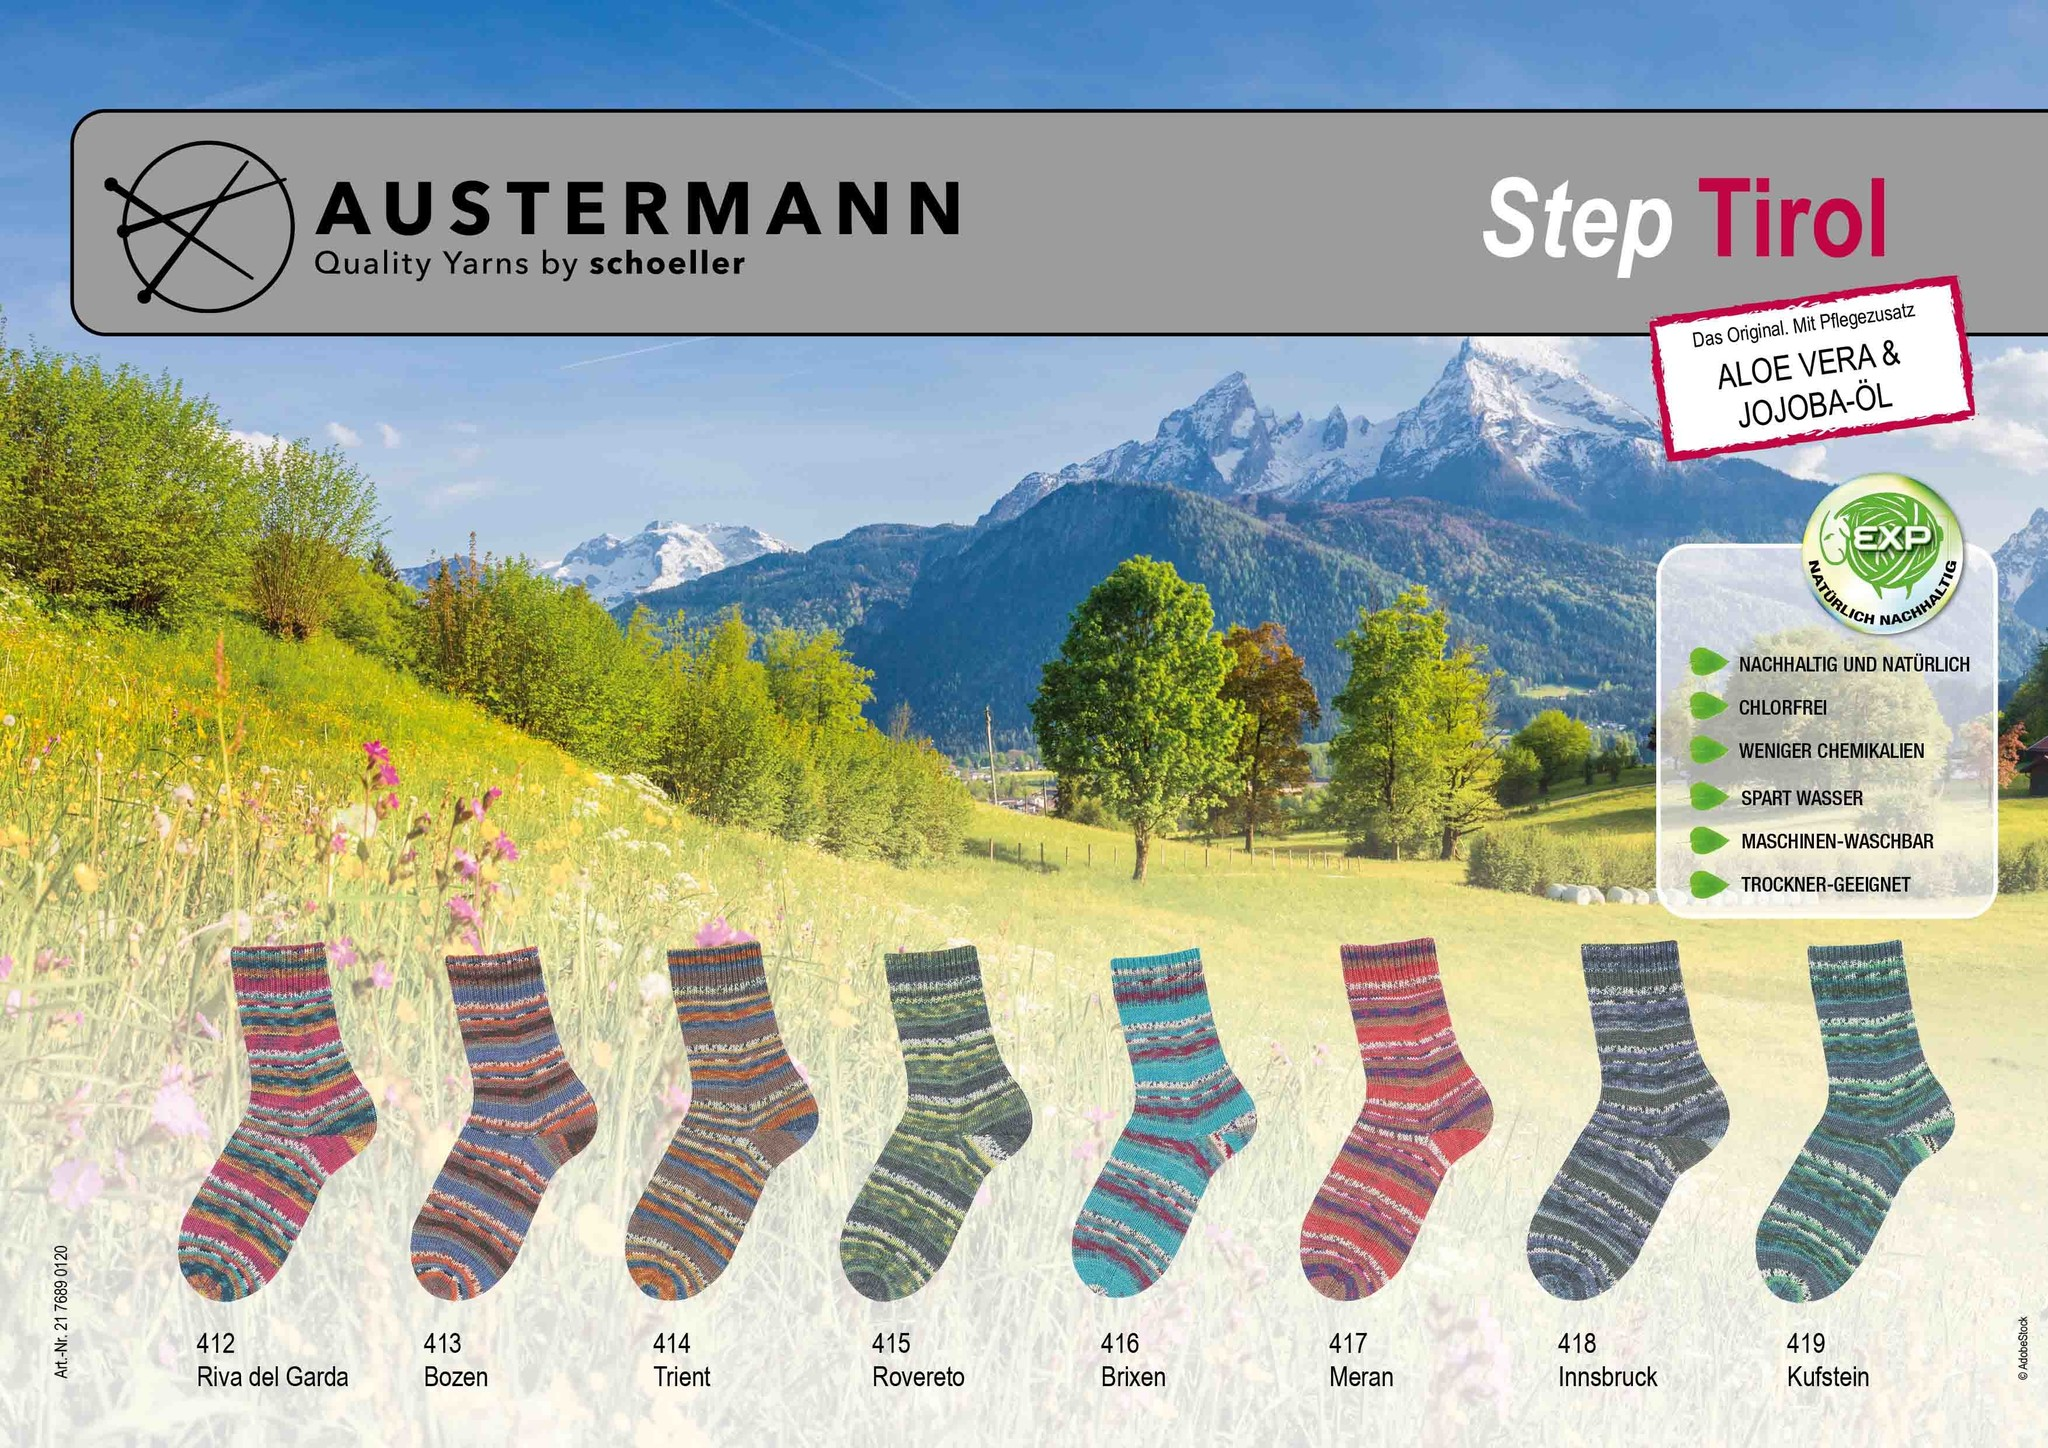 Austermann Step 4 Tirol Nr. 415 - Rovereto